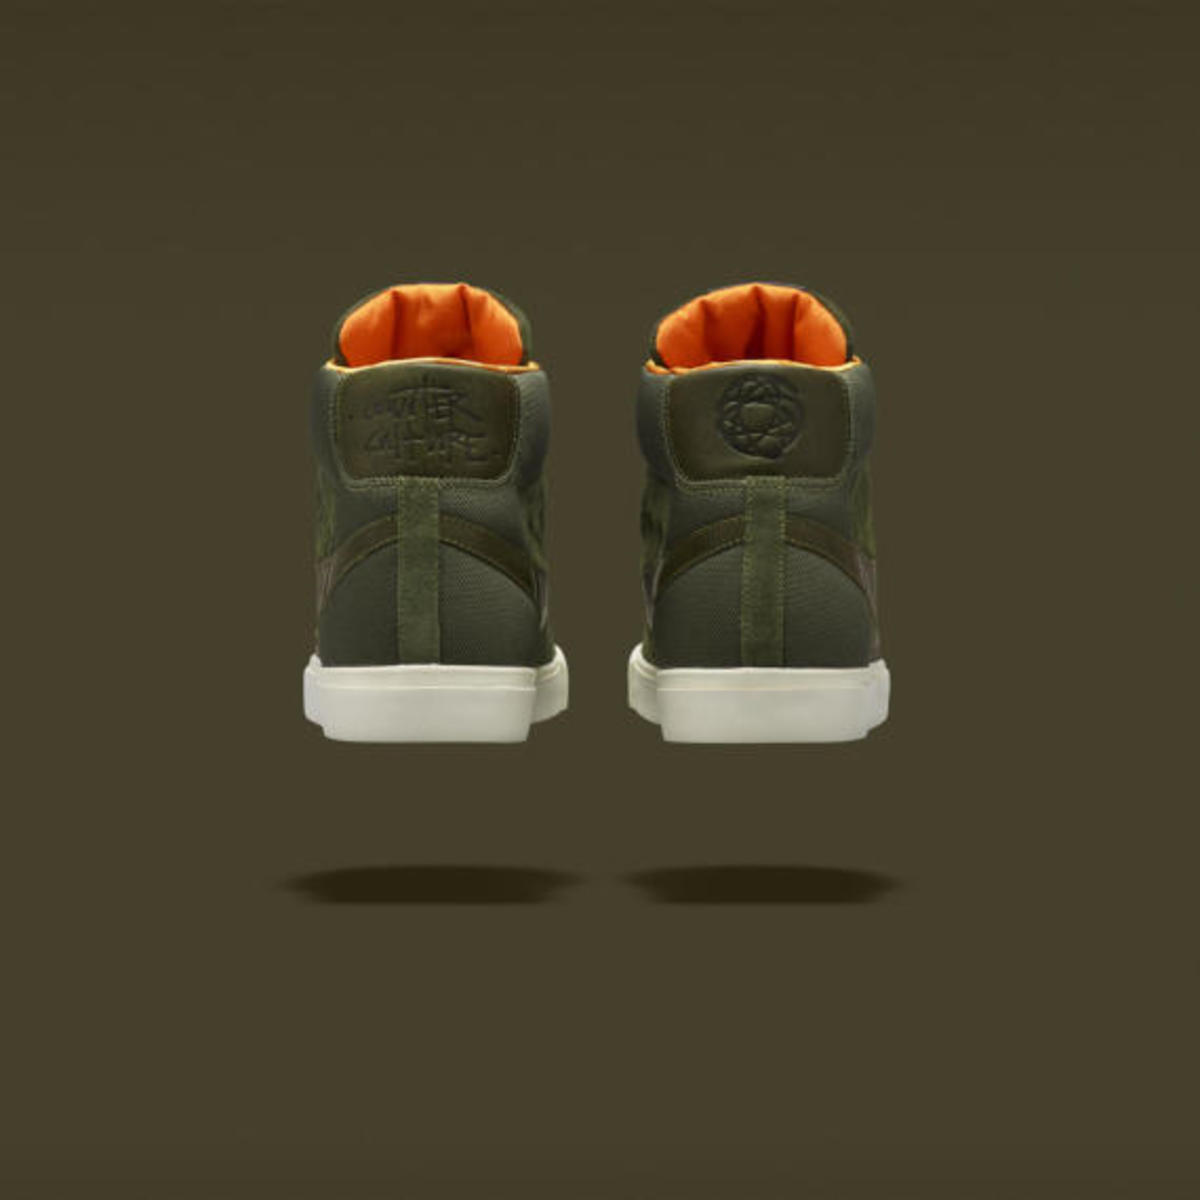 nike-mo-wax-by-james-lavelle-capsule-release-info-11